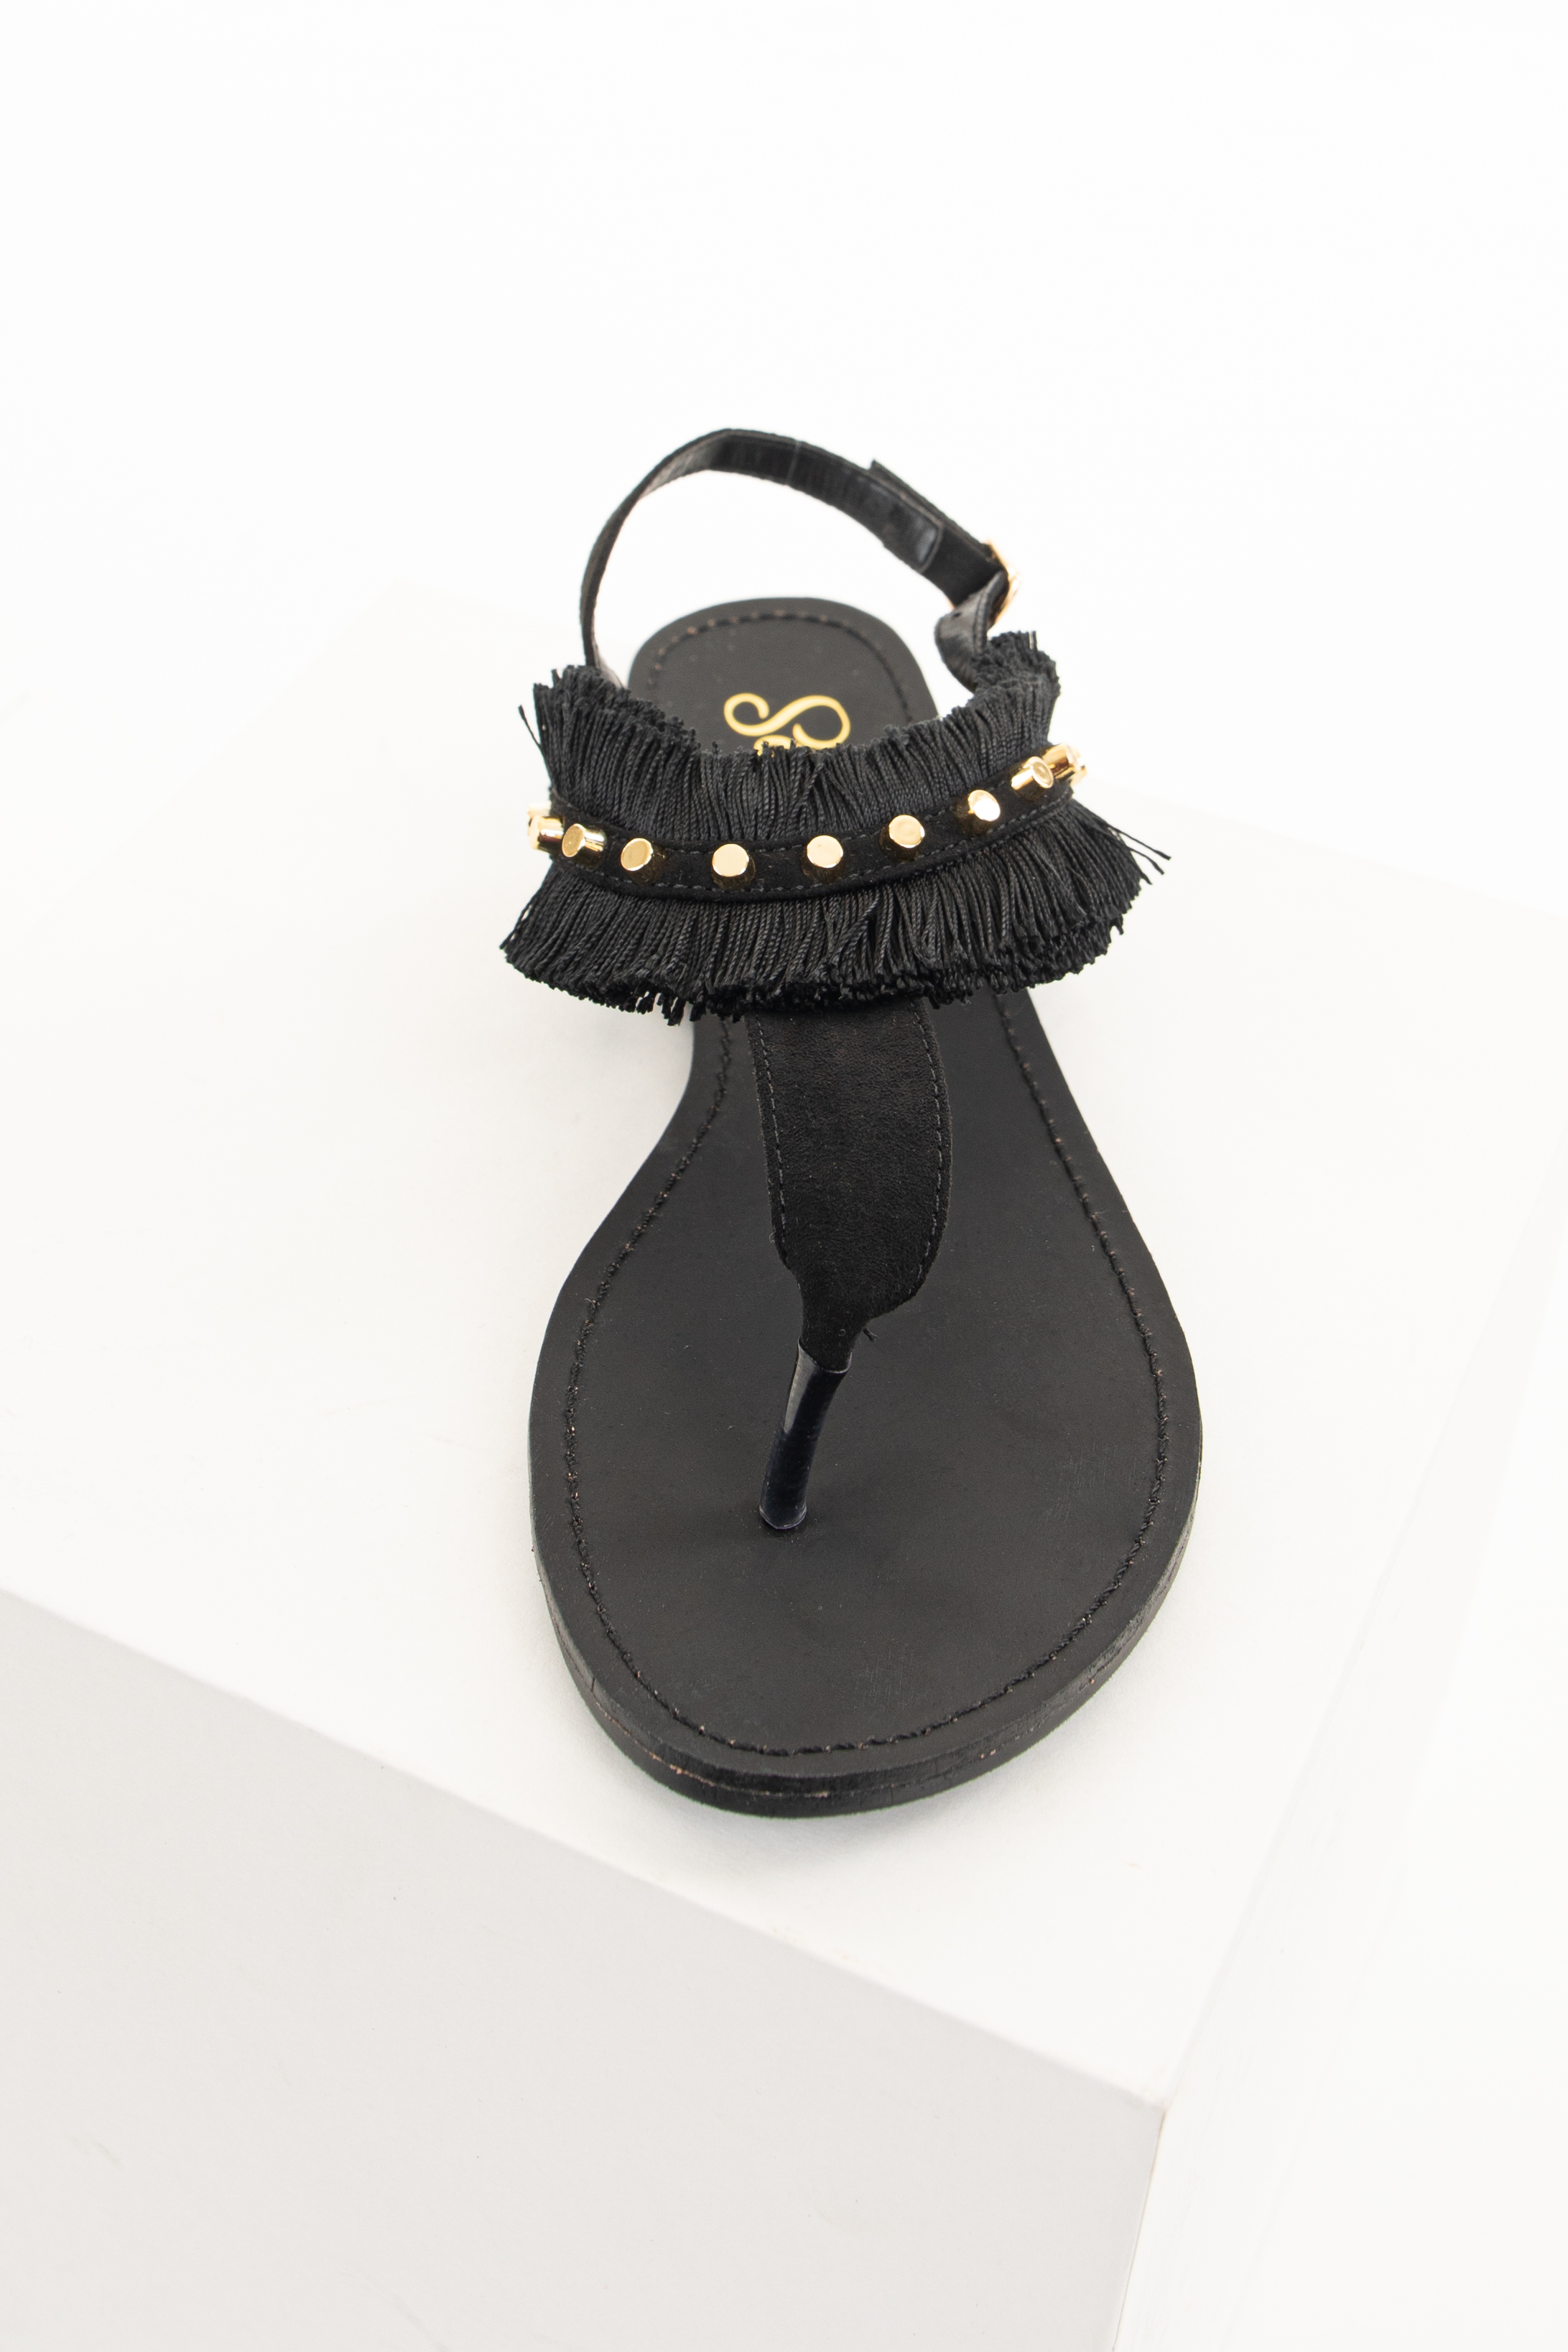 Black Fringe Gladiator Sandals with Gold Stud Details